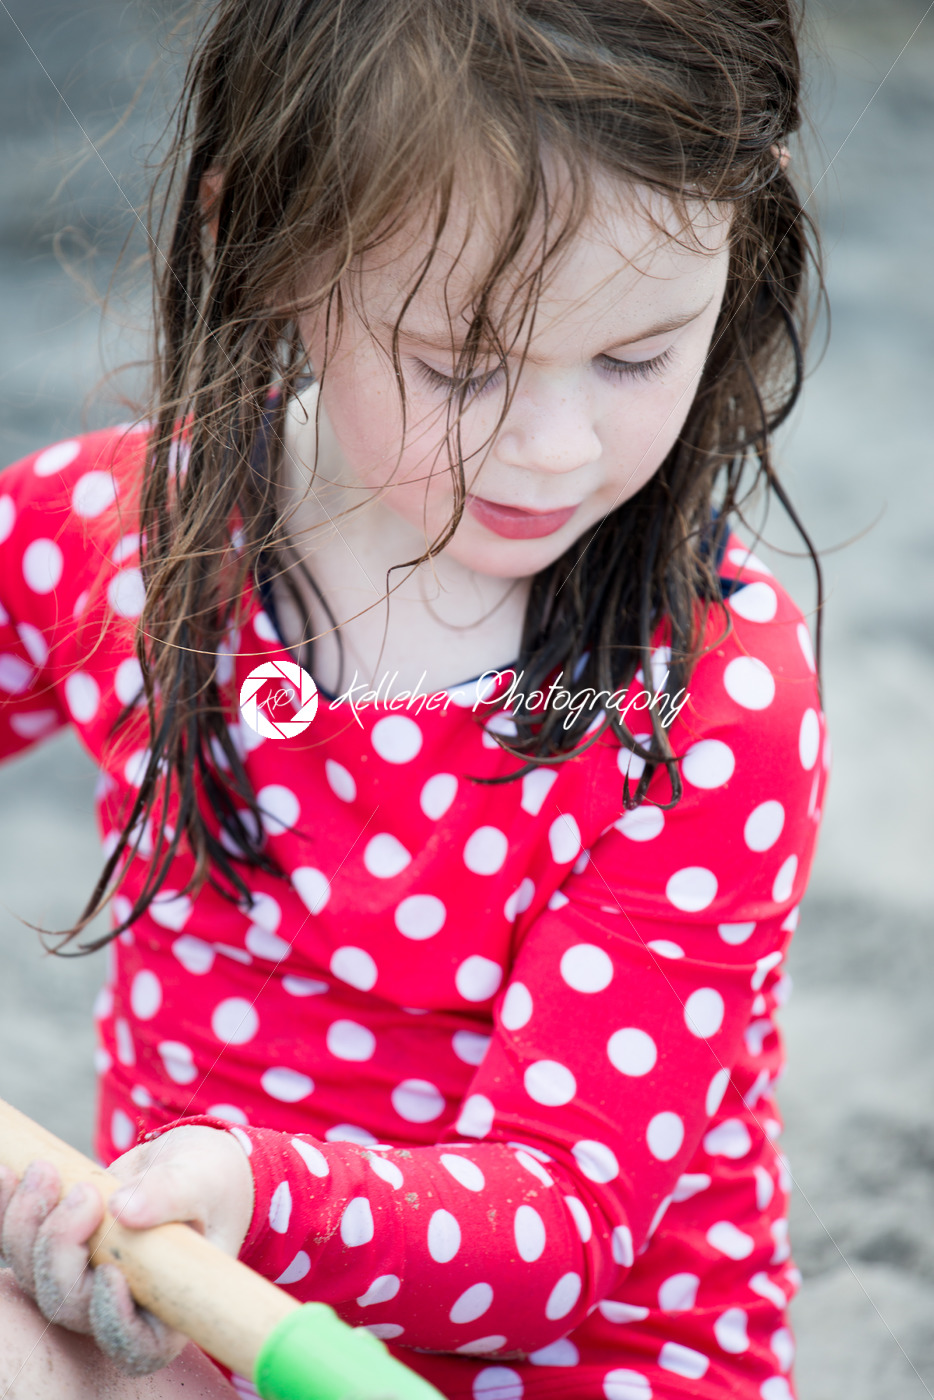 yound toddler girl having fun digging in the sand at the beach - Kelleher Photography Store